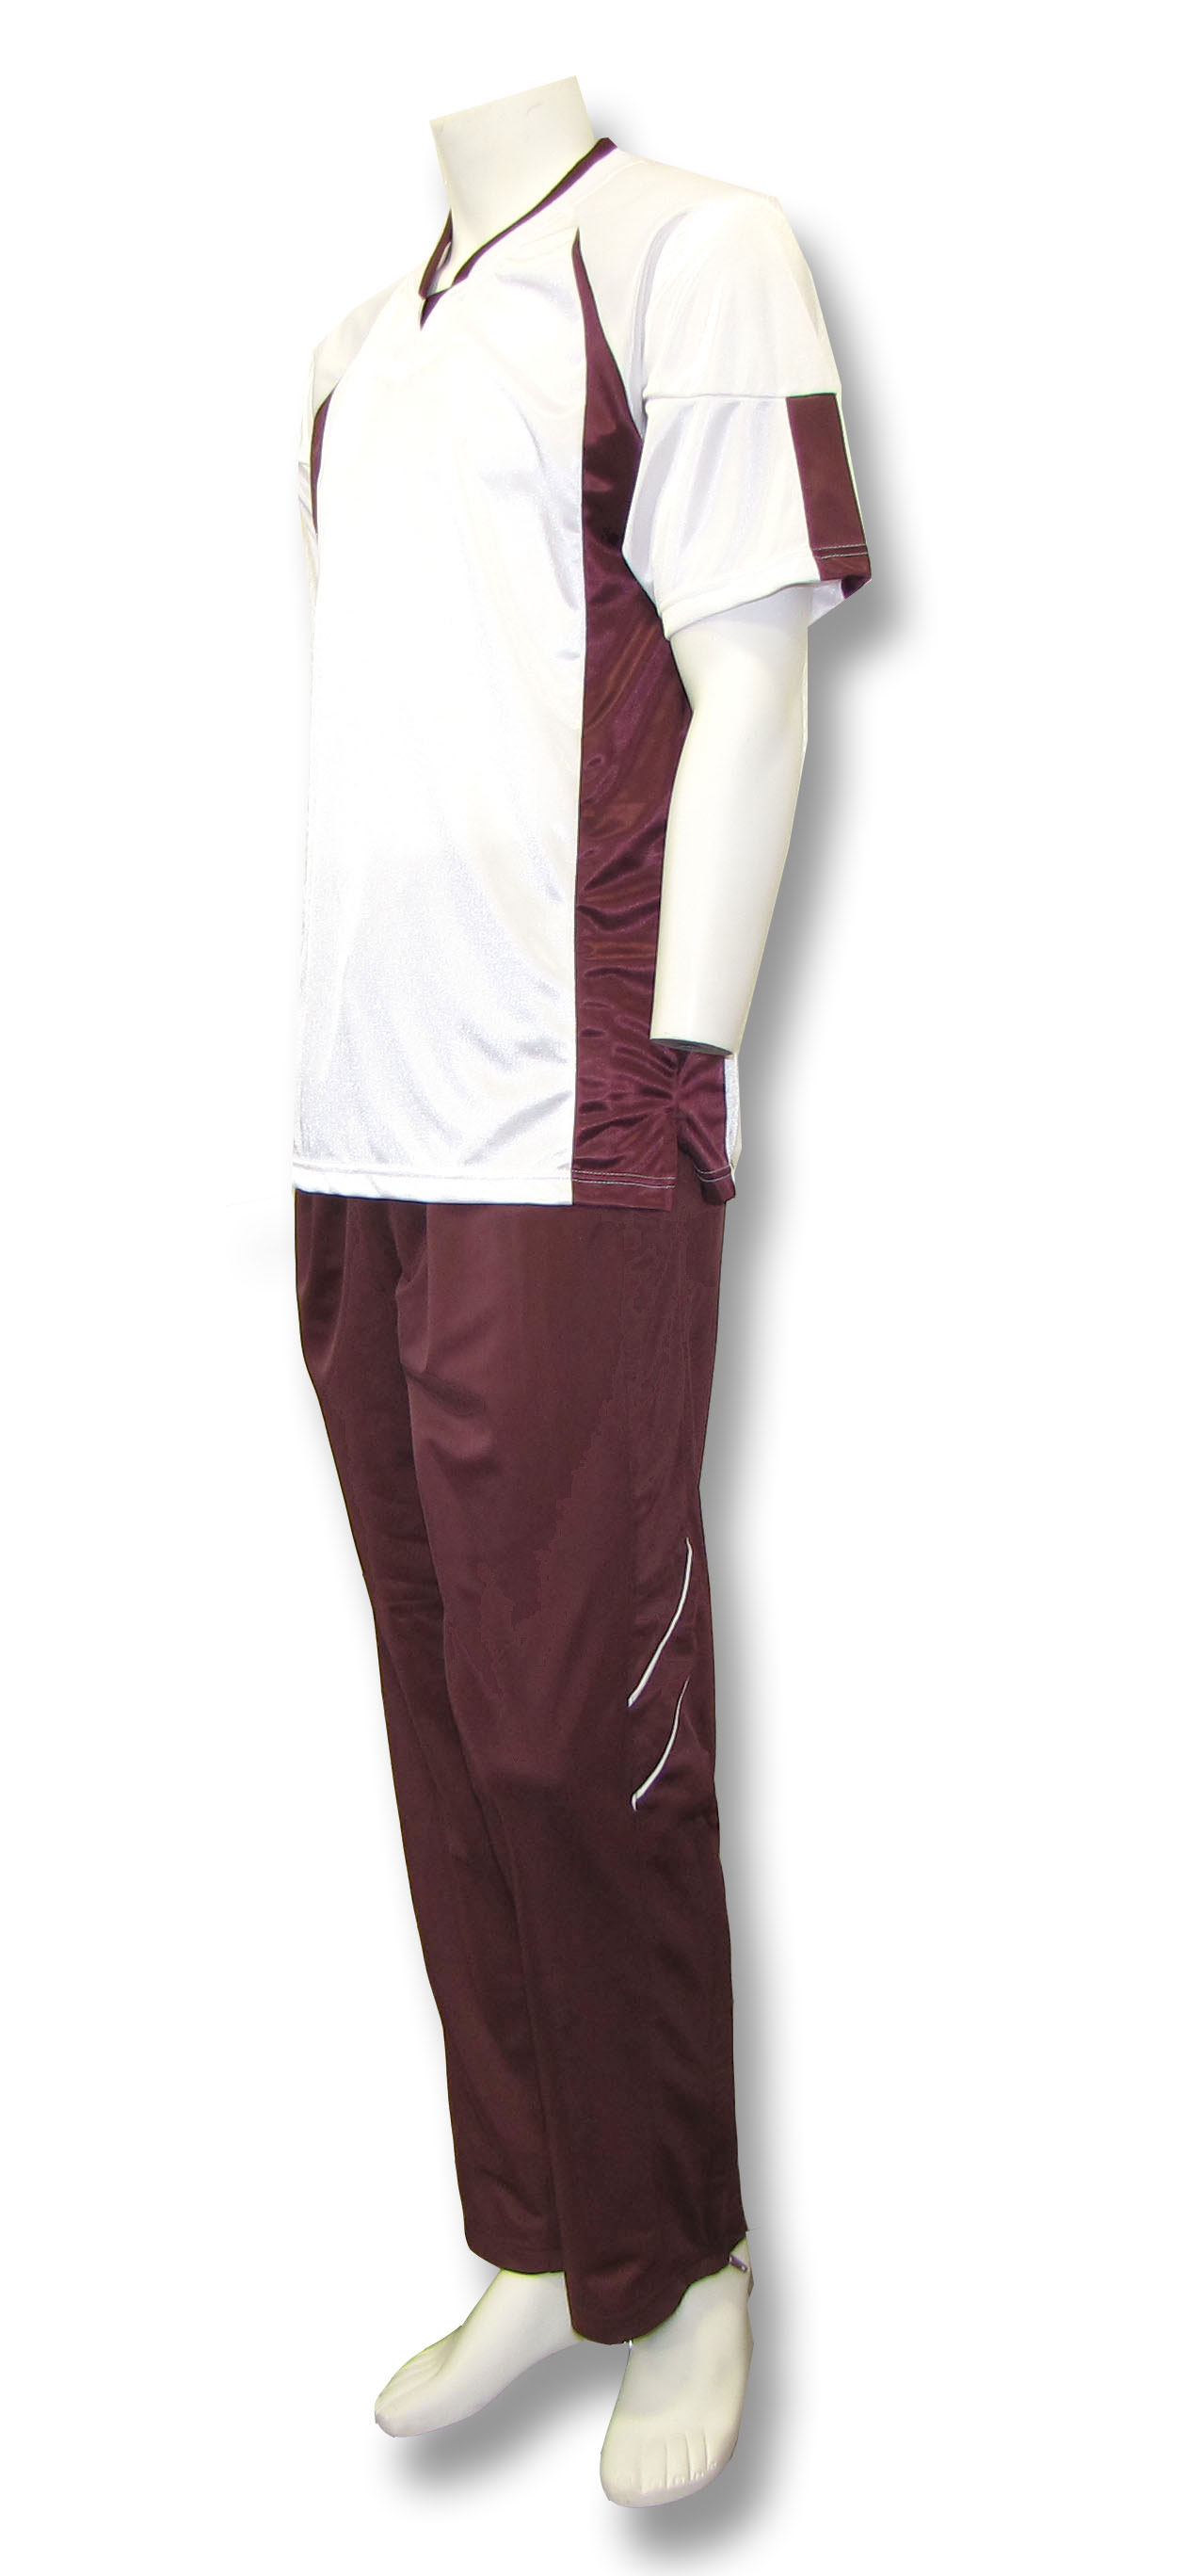 Elite basketball warm ups in white/maroon by Code Four Athletics